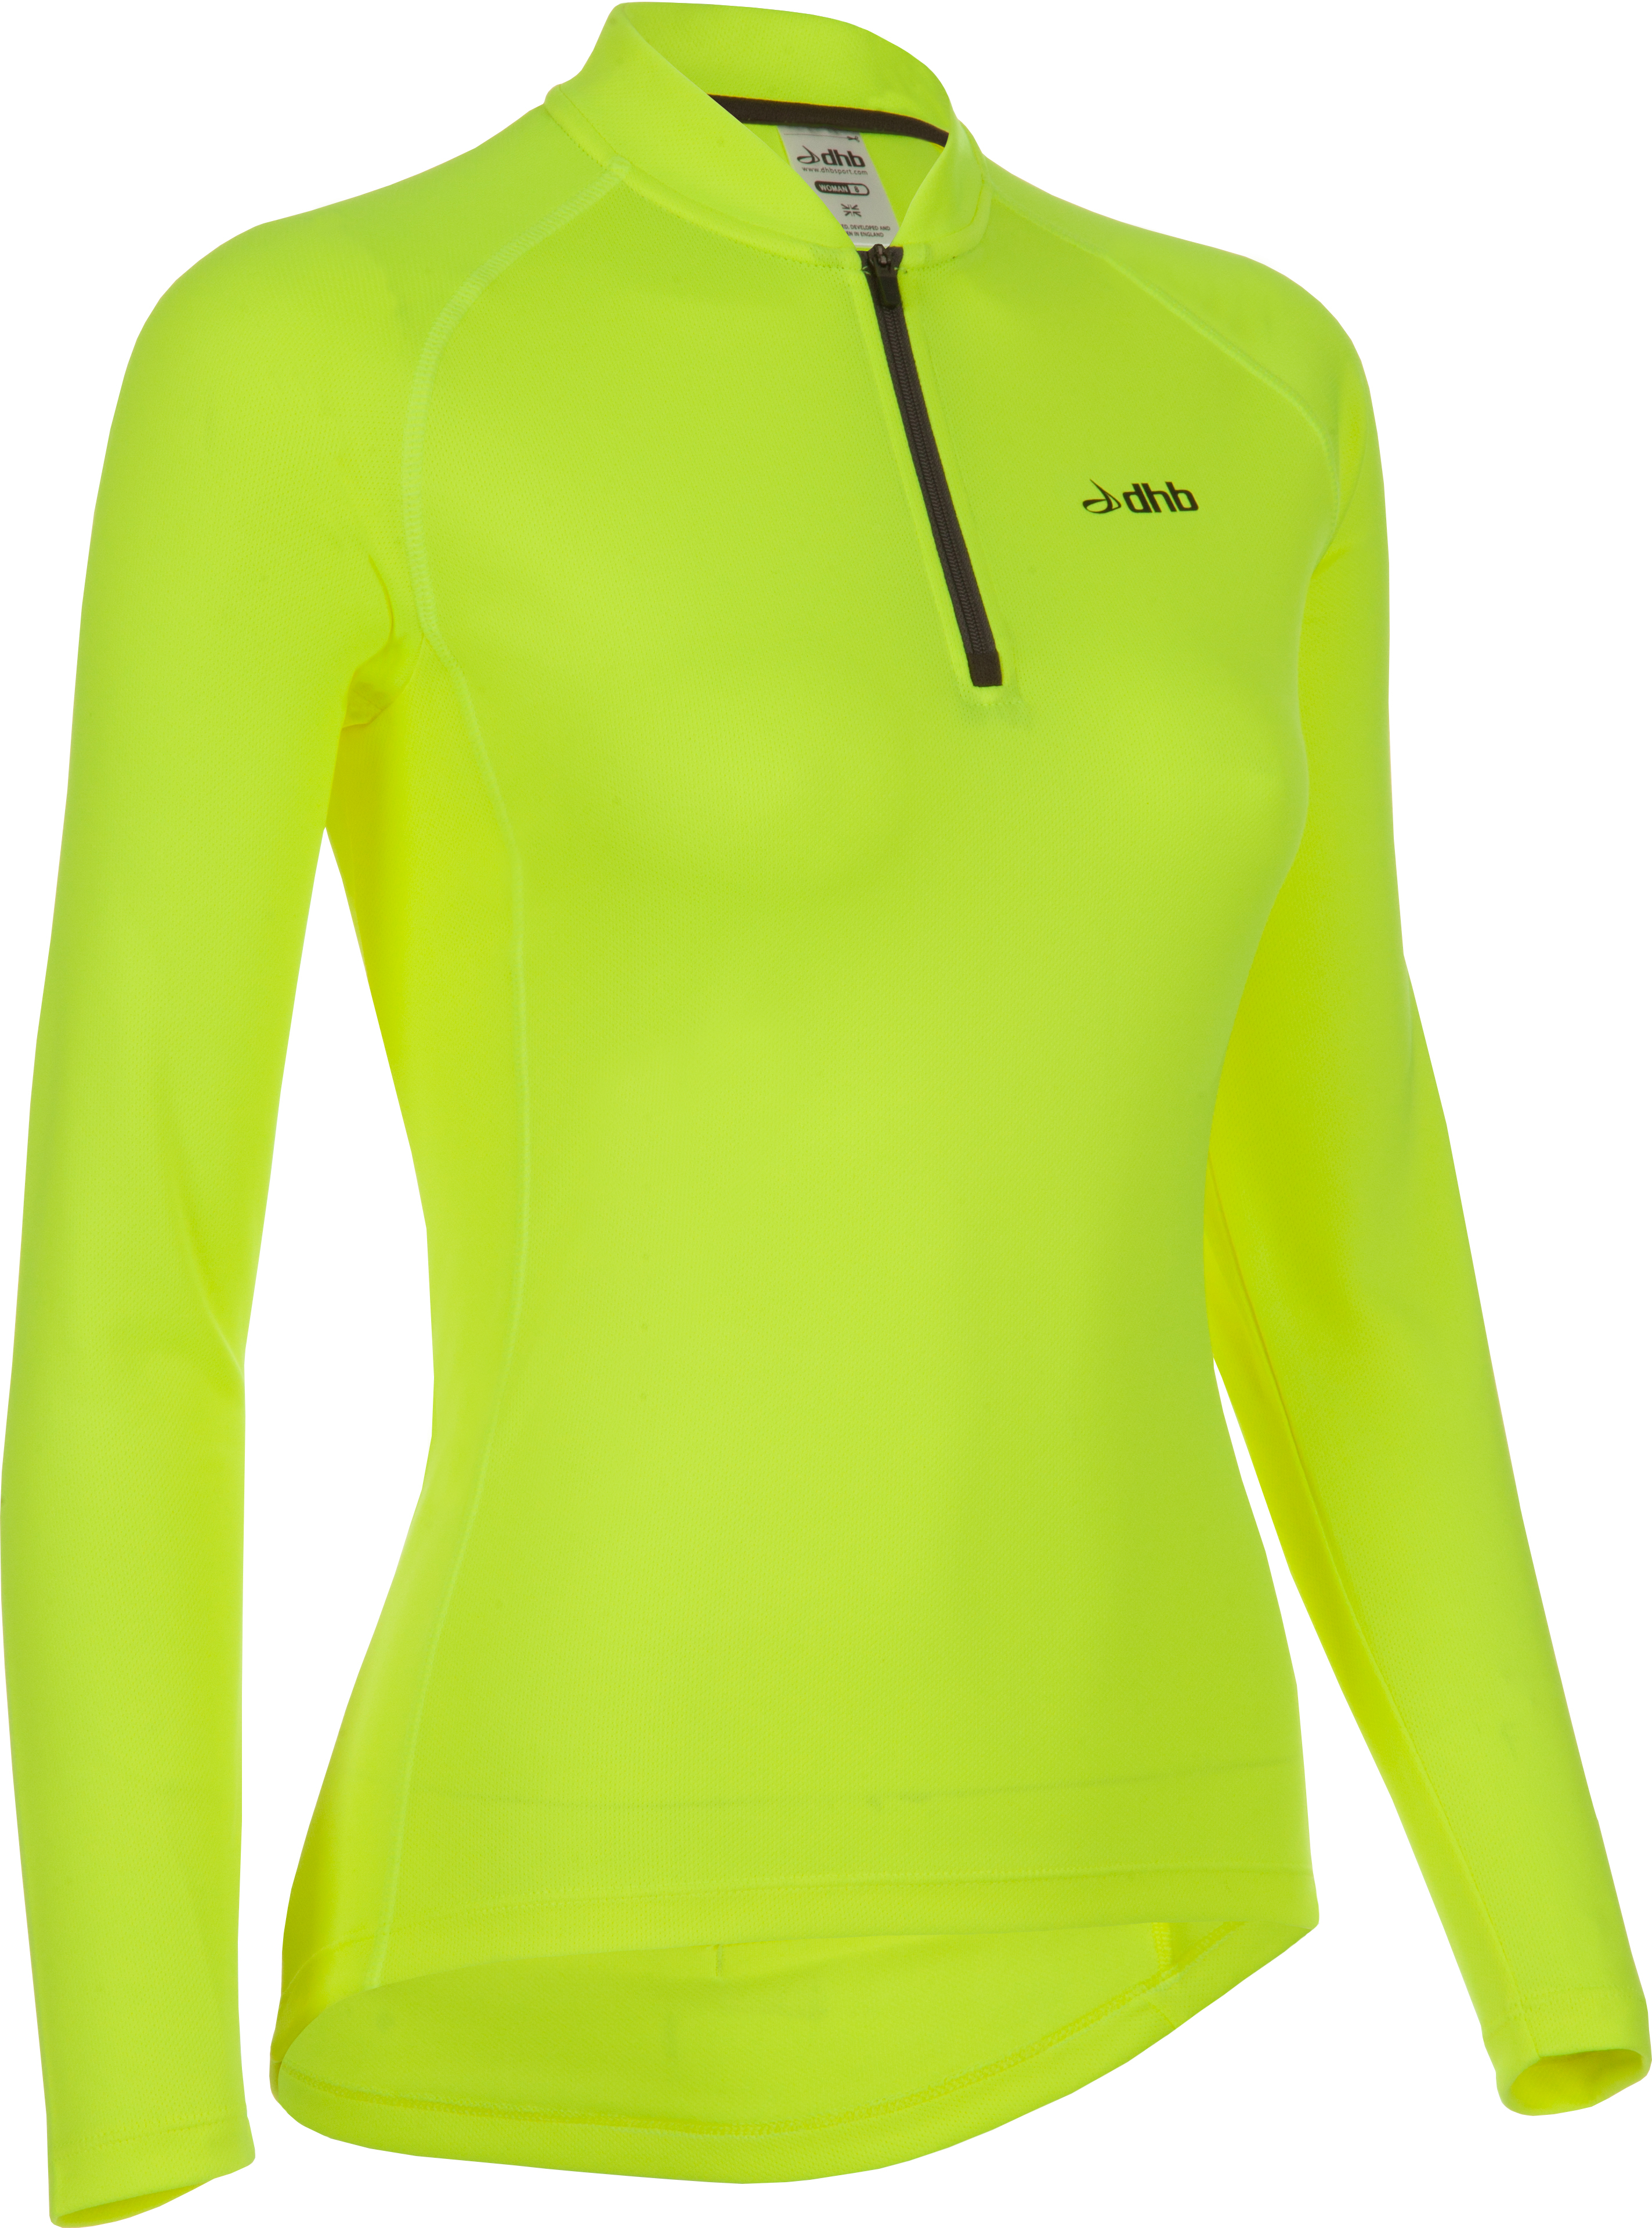 Image result for cycling long sleeve women jersey